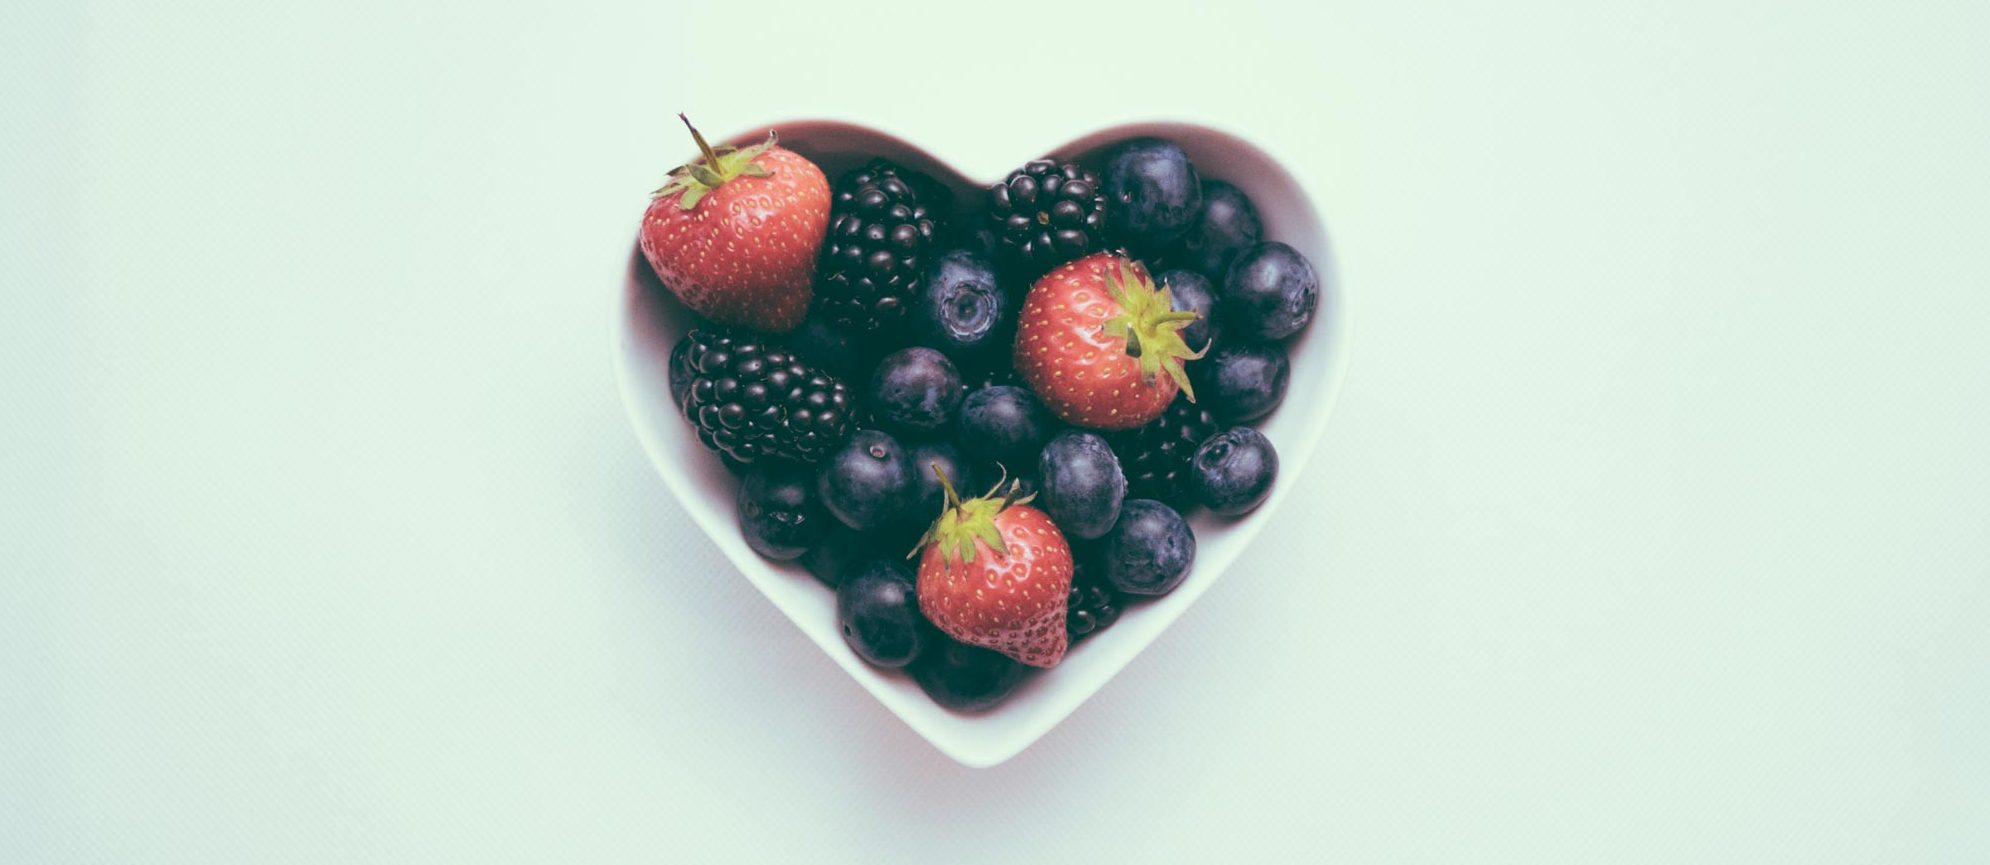 Heart shaped bowl filled with berries